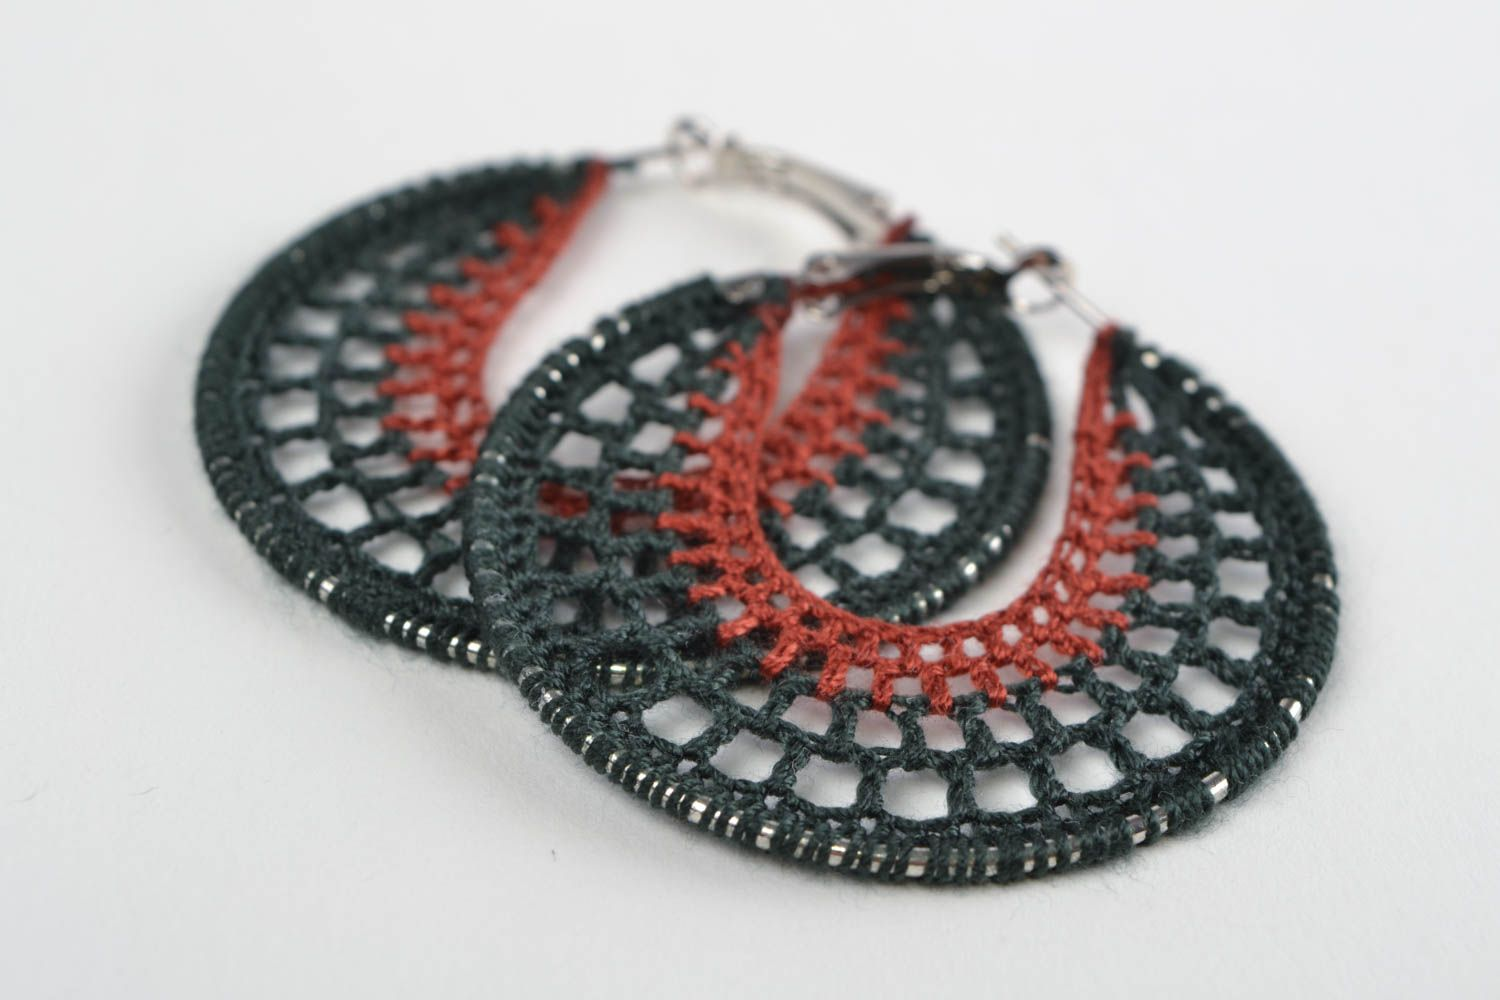 Handmade dangling ring shaped earrings woven of threads on metal round basis photo 1